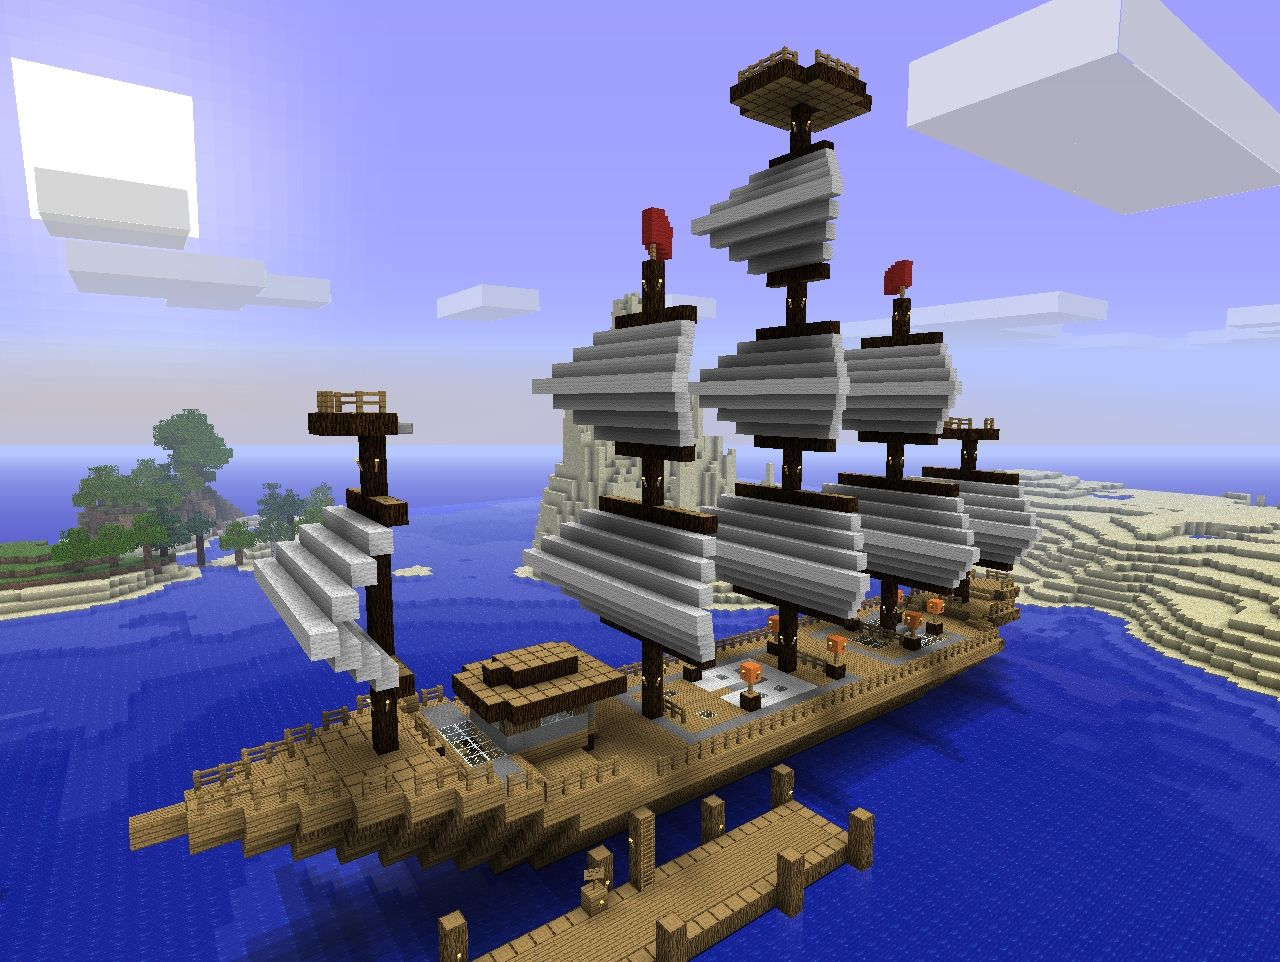 Two Awesome Ships on Minecraft Castle Blueprints